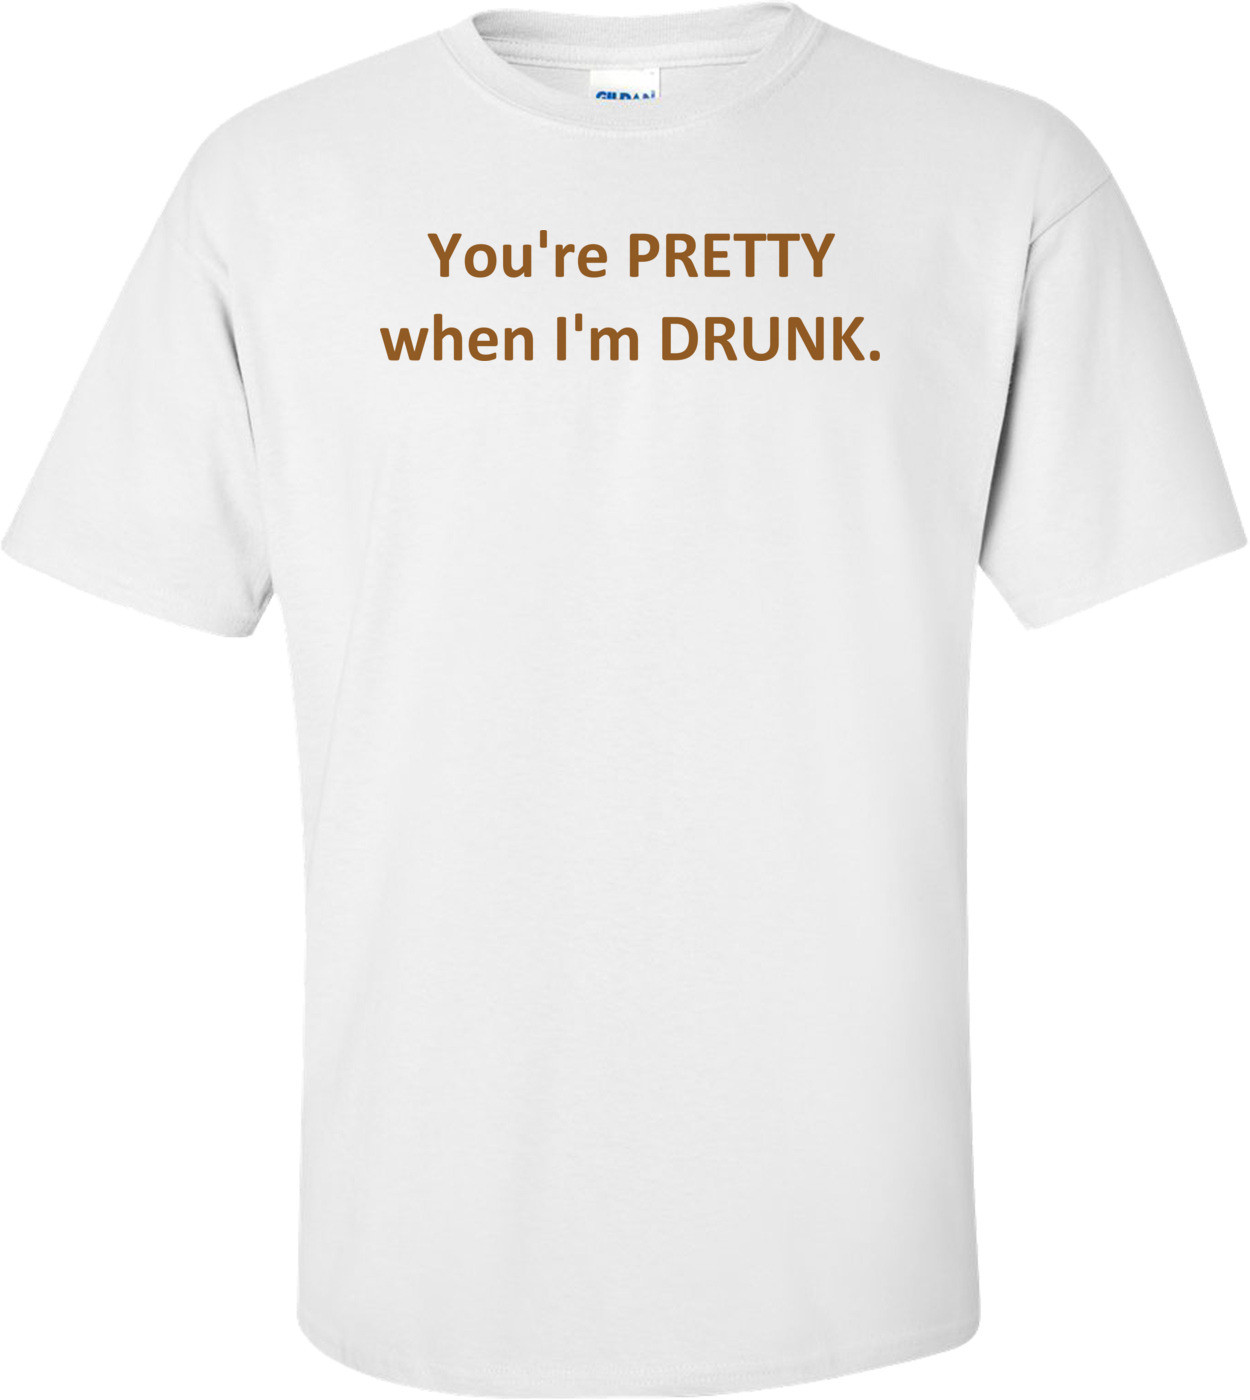 You're PRETTY when I'm DRUNK. Shirt